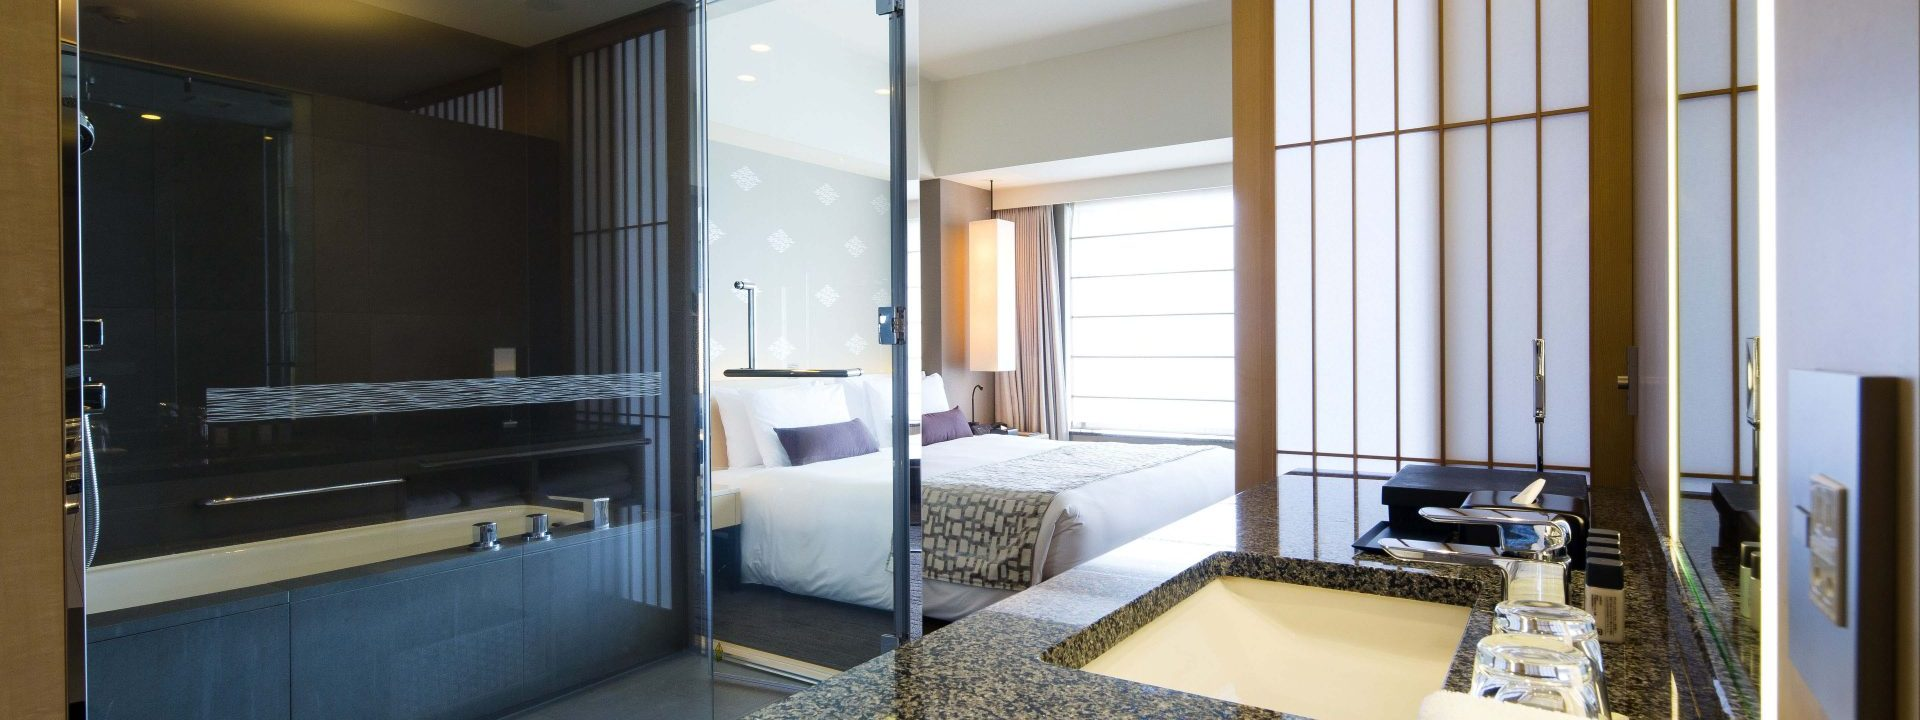 The Capitol Hotel Tokyu offers a rare amenity in Tokyo—space!